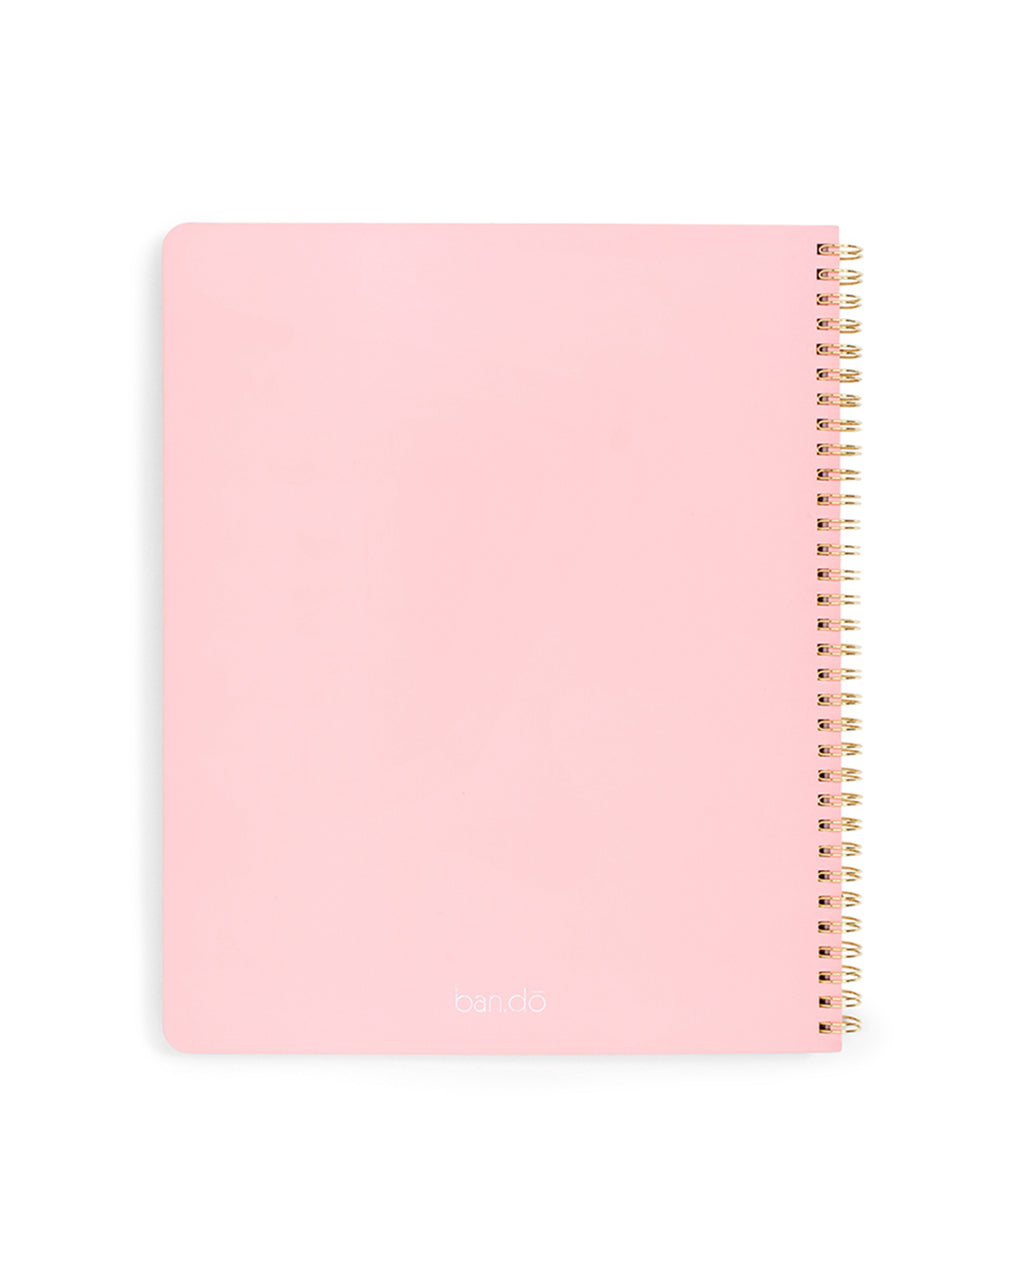 Rough Draft Large Notebook - I Am Very Busy, Pink/Holographic